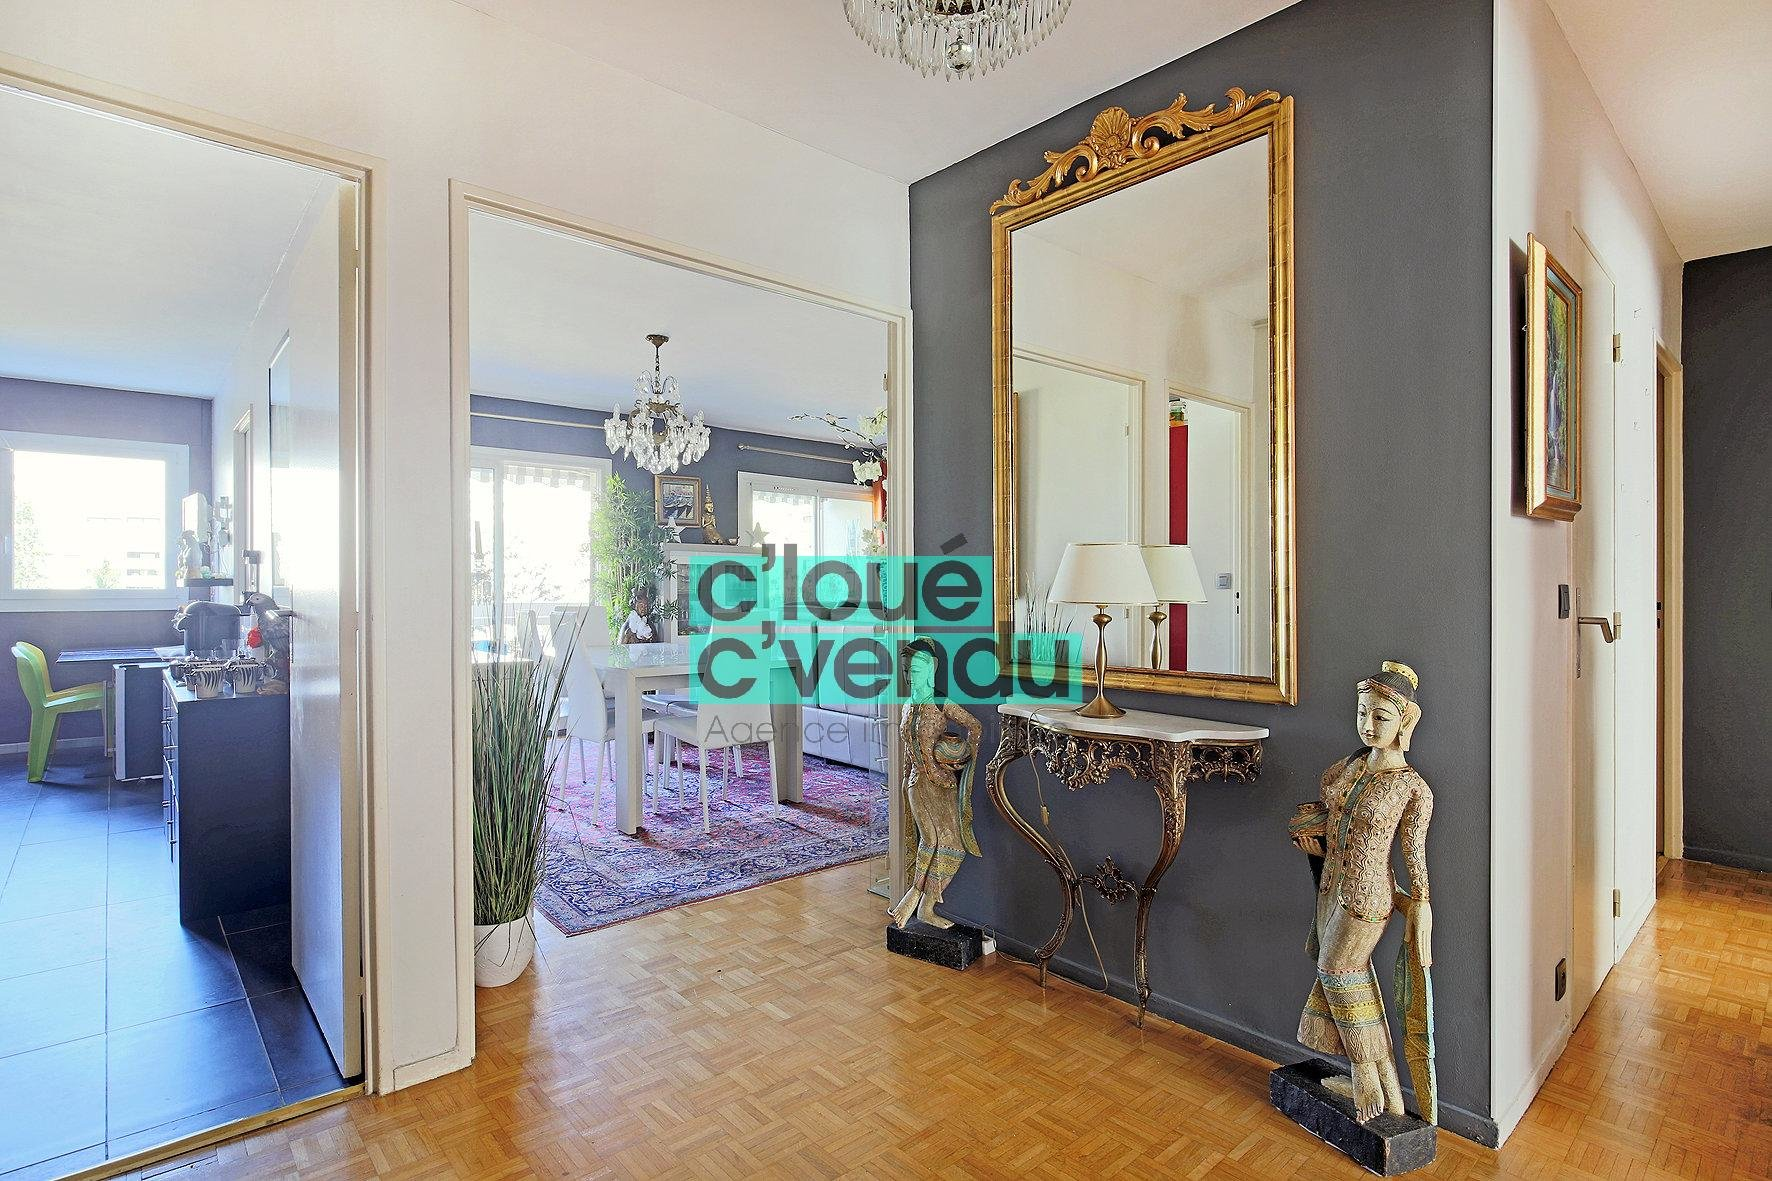 T3 88 m² VIAGER OCCUPE à CALUIRE Montessuy